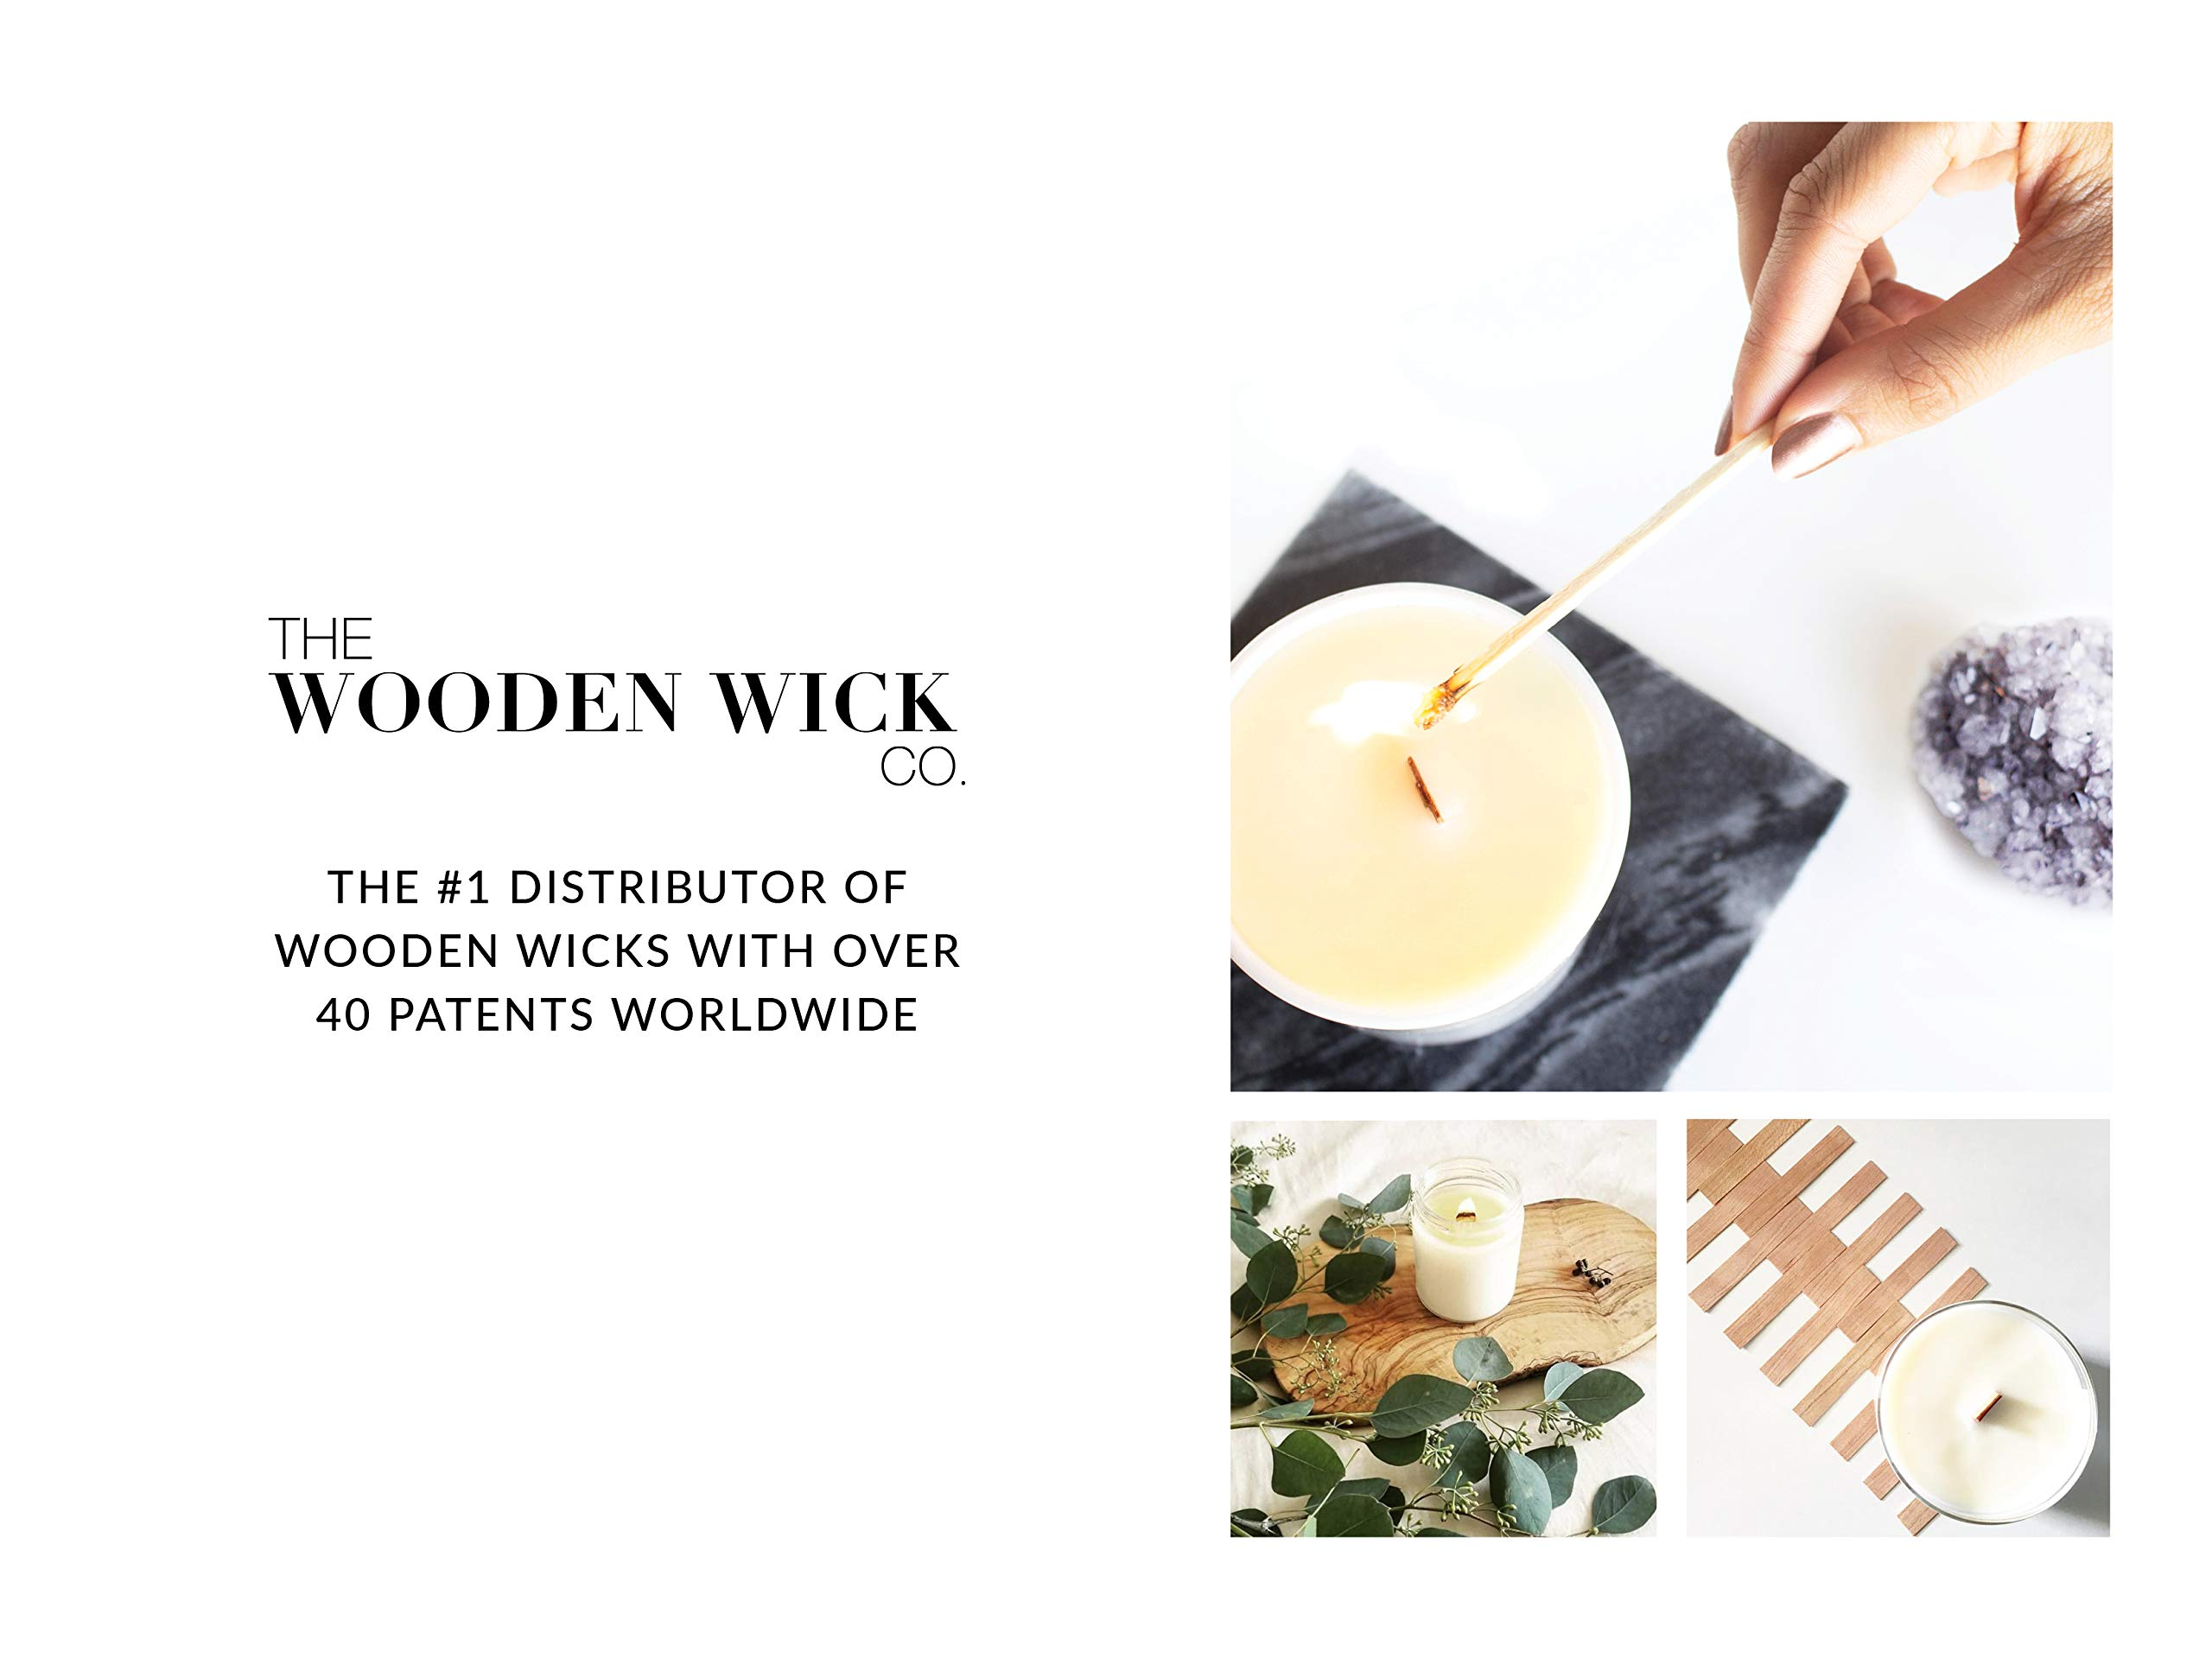 Wooden Candle Wick for Vegetable Blended Wax Candles with Jar Diameter 2.5-3 inches by Wooden Wick Co. | 5 Inch Crackling Wood Wick Candle Making Supplies with Metal Stand''Original Booster Wick'' by Wooden Wick Co. (Image #3)